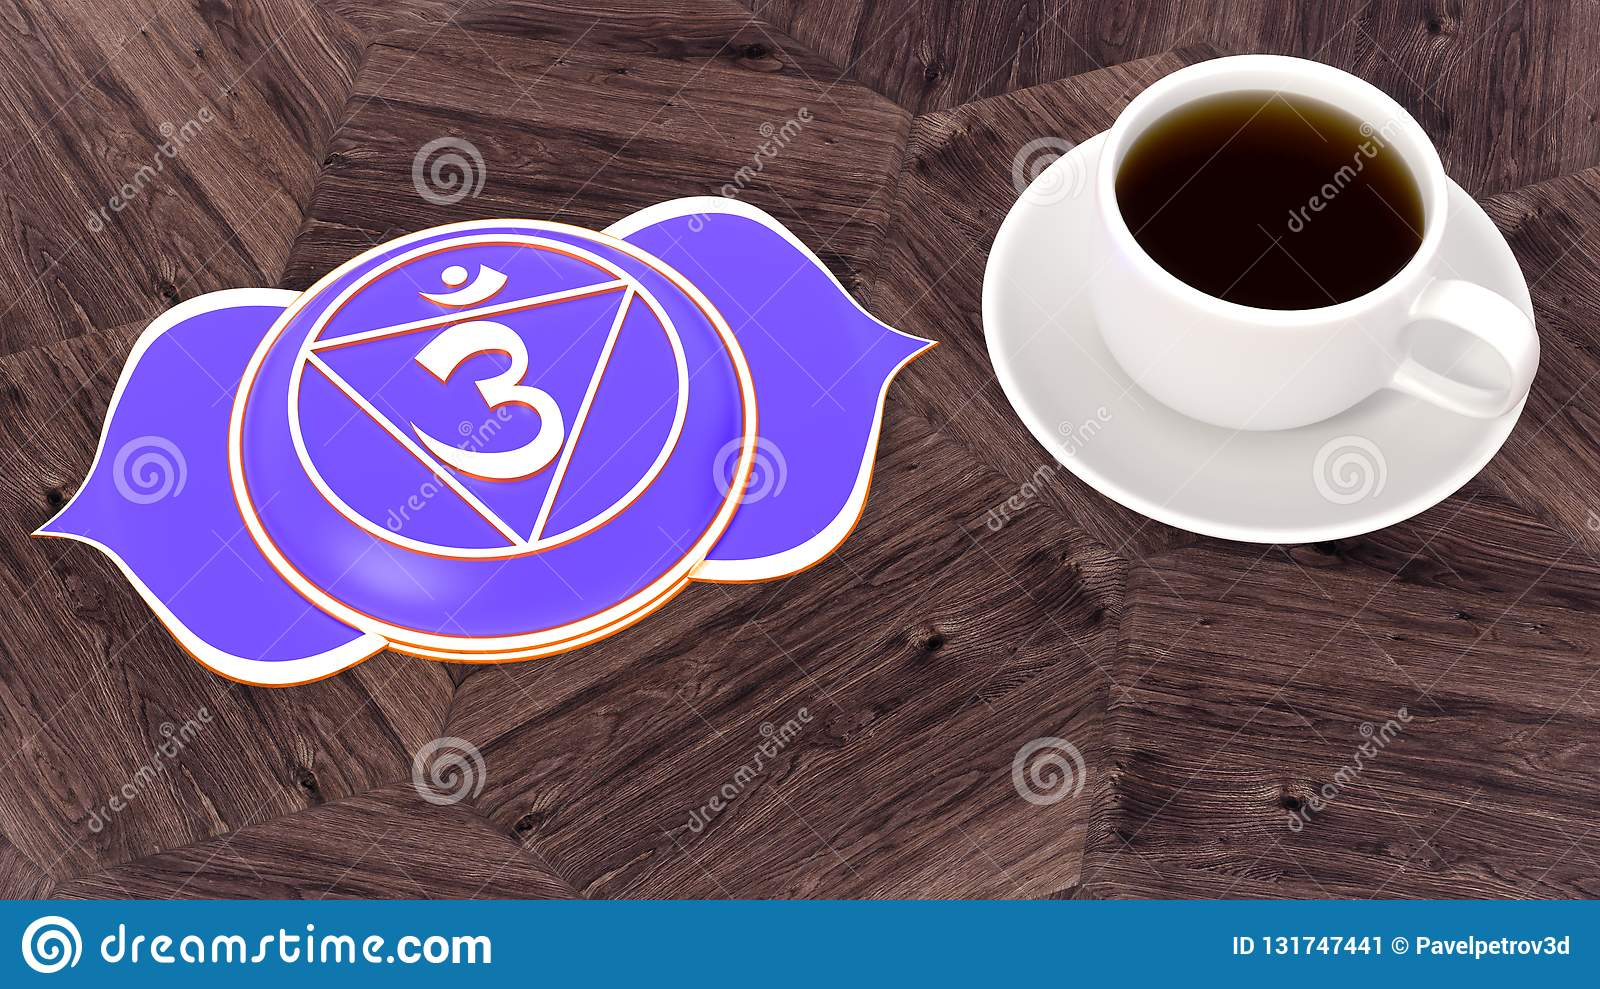 Сup of coffee on a wooden table. Morning Chakra Meditation. Ajna symbol 3d illustration